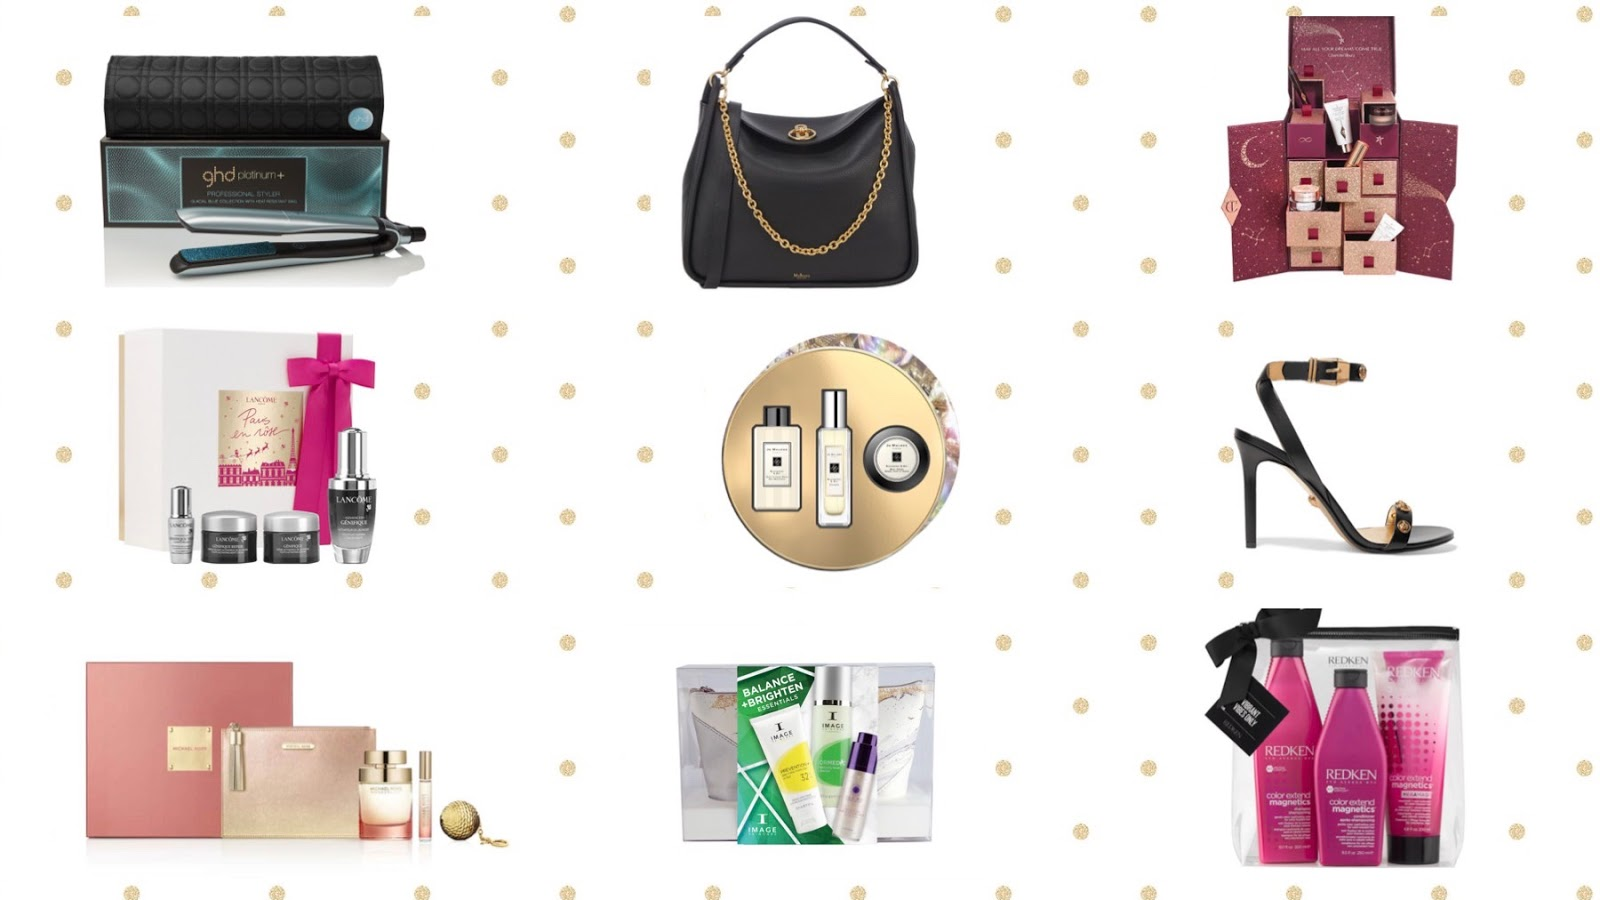 Christmas Gifts 2018 For Her.The Ultimate For Her 2018 Christmas Gift Guide Style Me Curvy